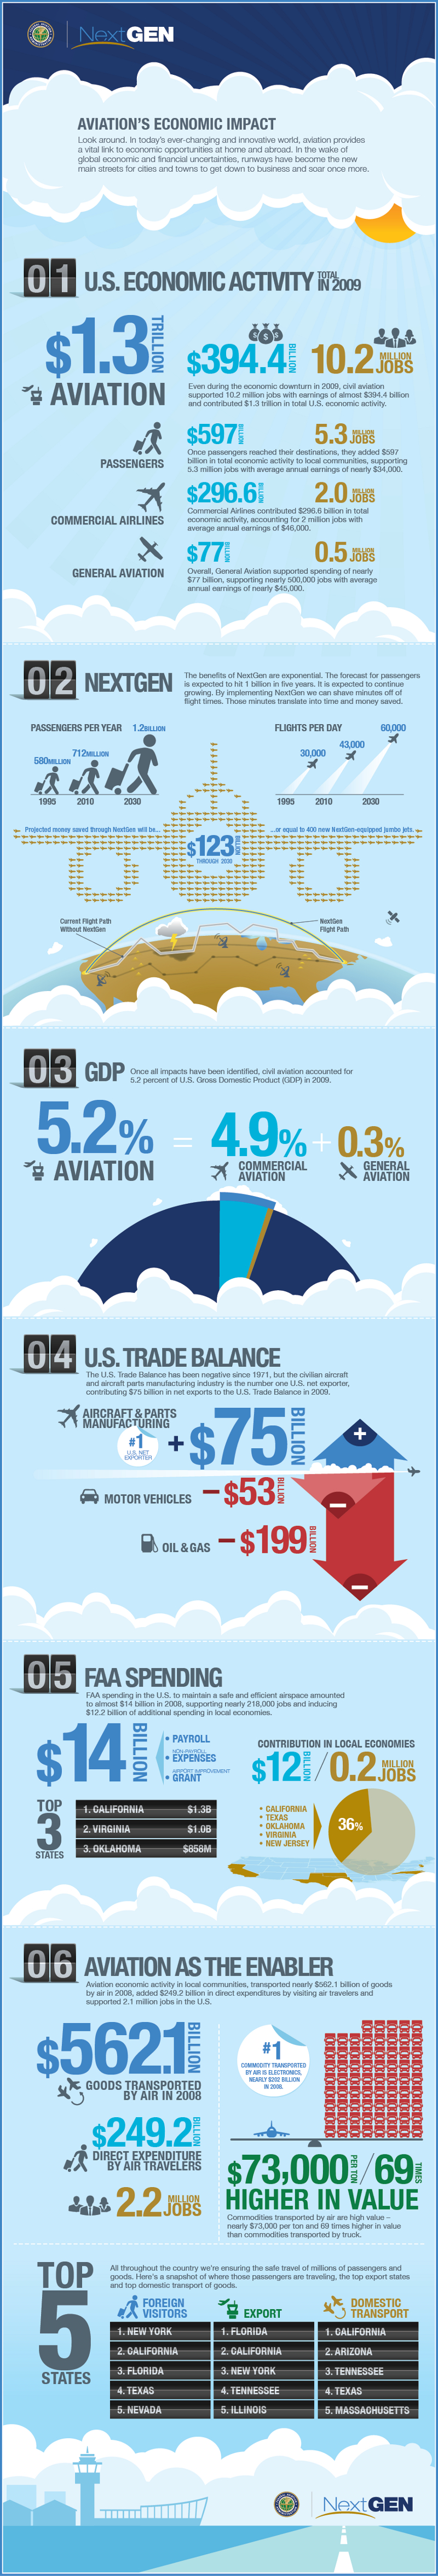 Airline Industry Economic Impact